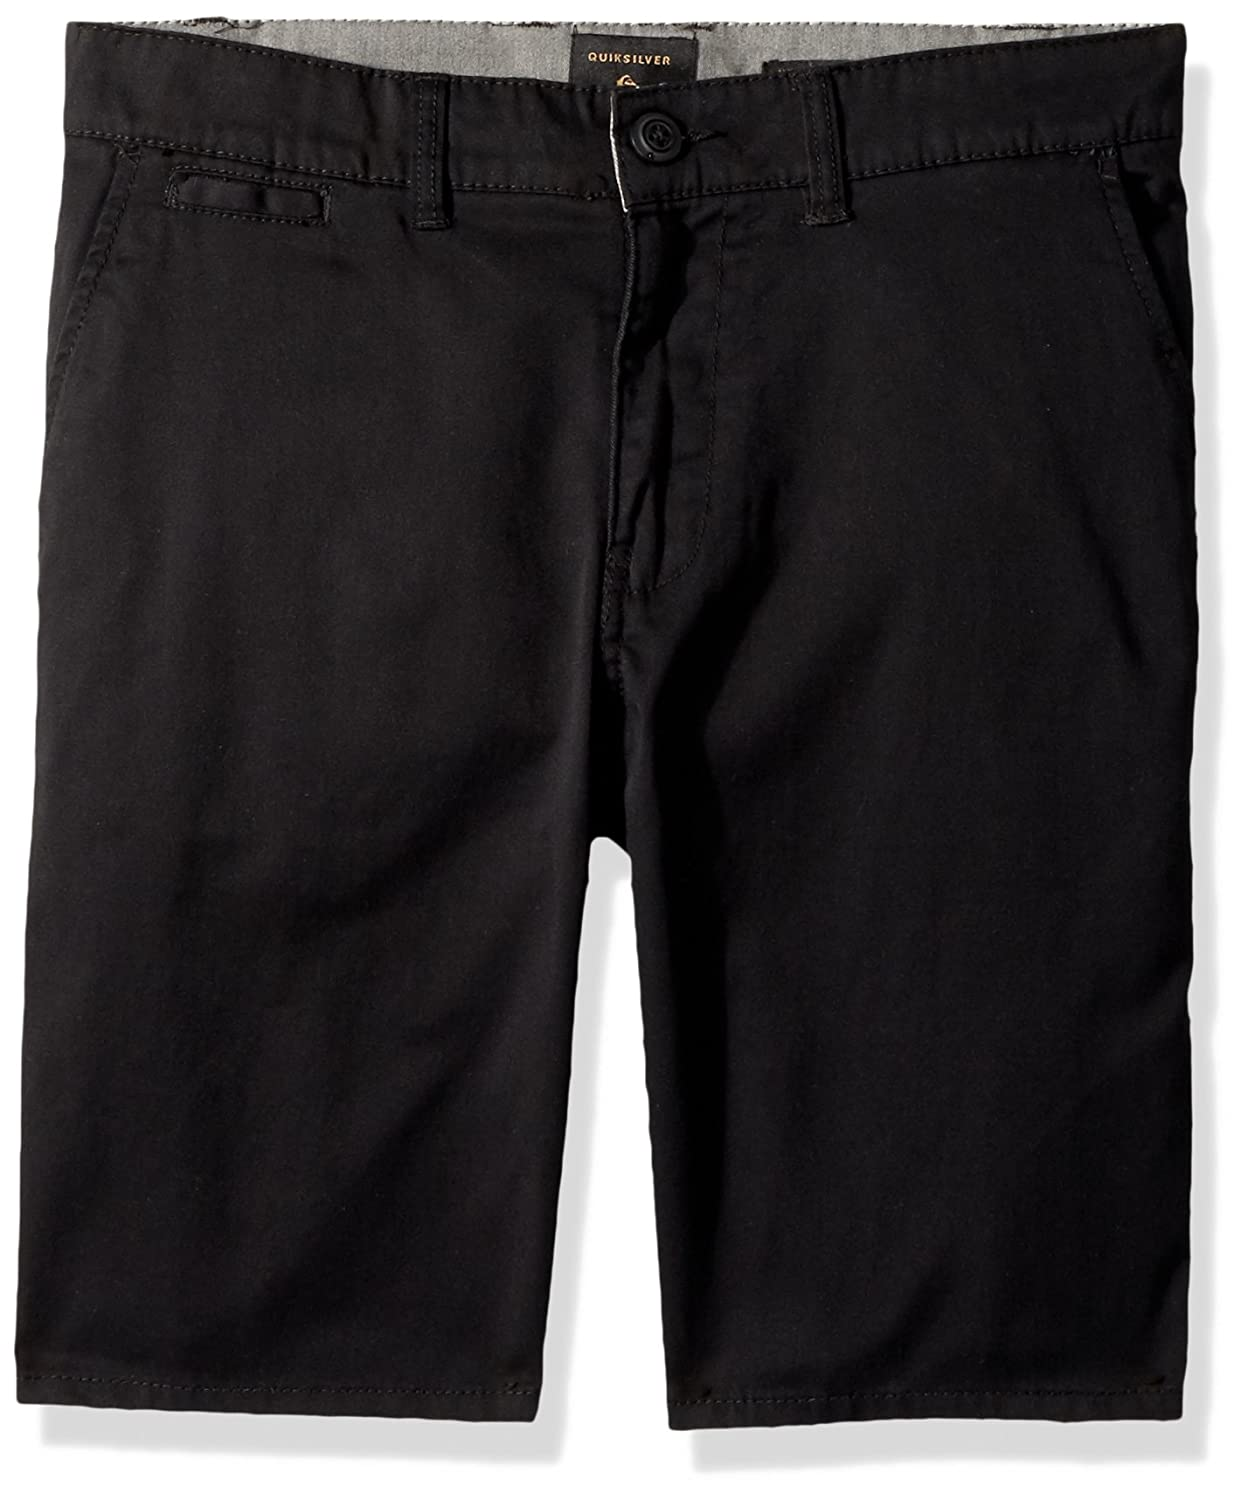 Quiksilver Boys 8- New Everyday Union - Chino Shorts Size 25-10